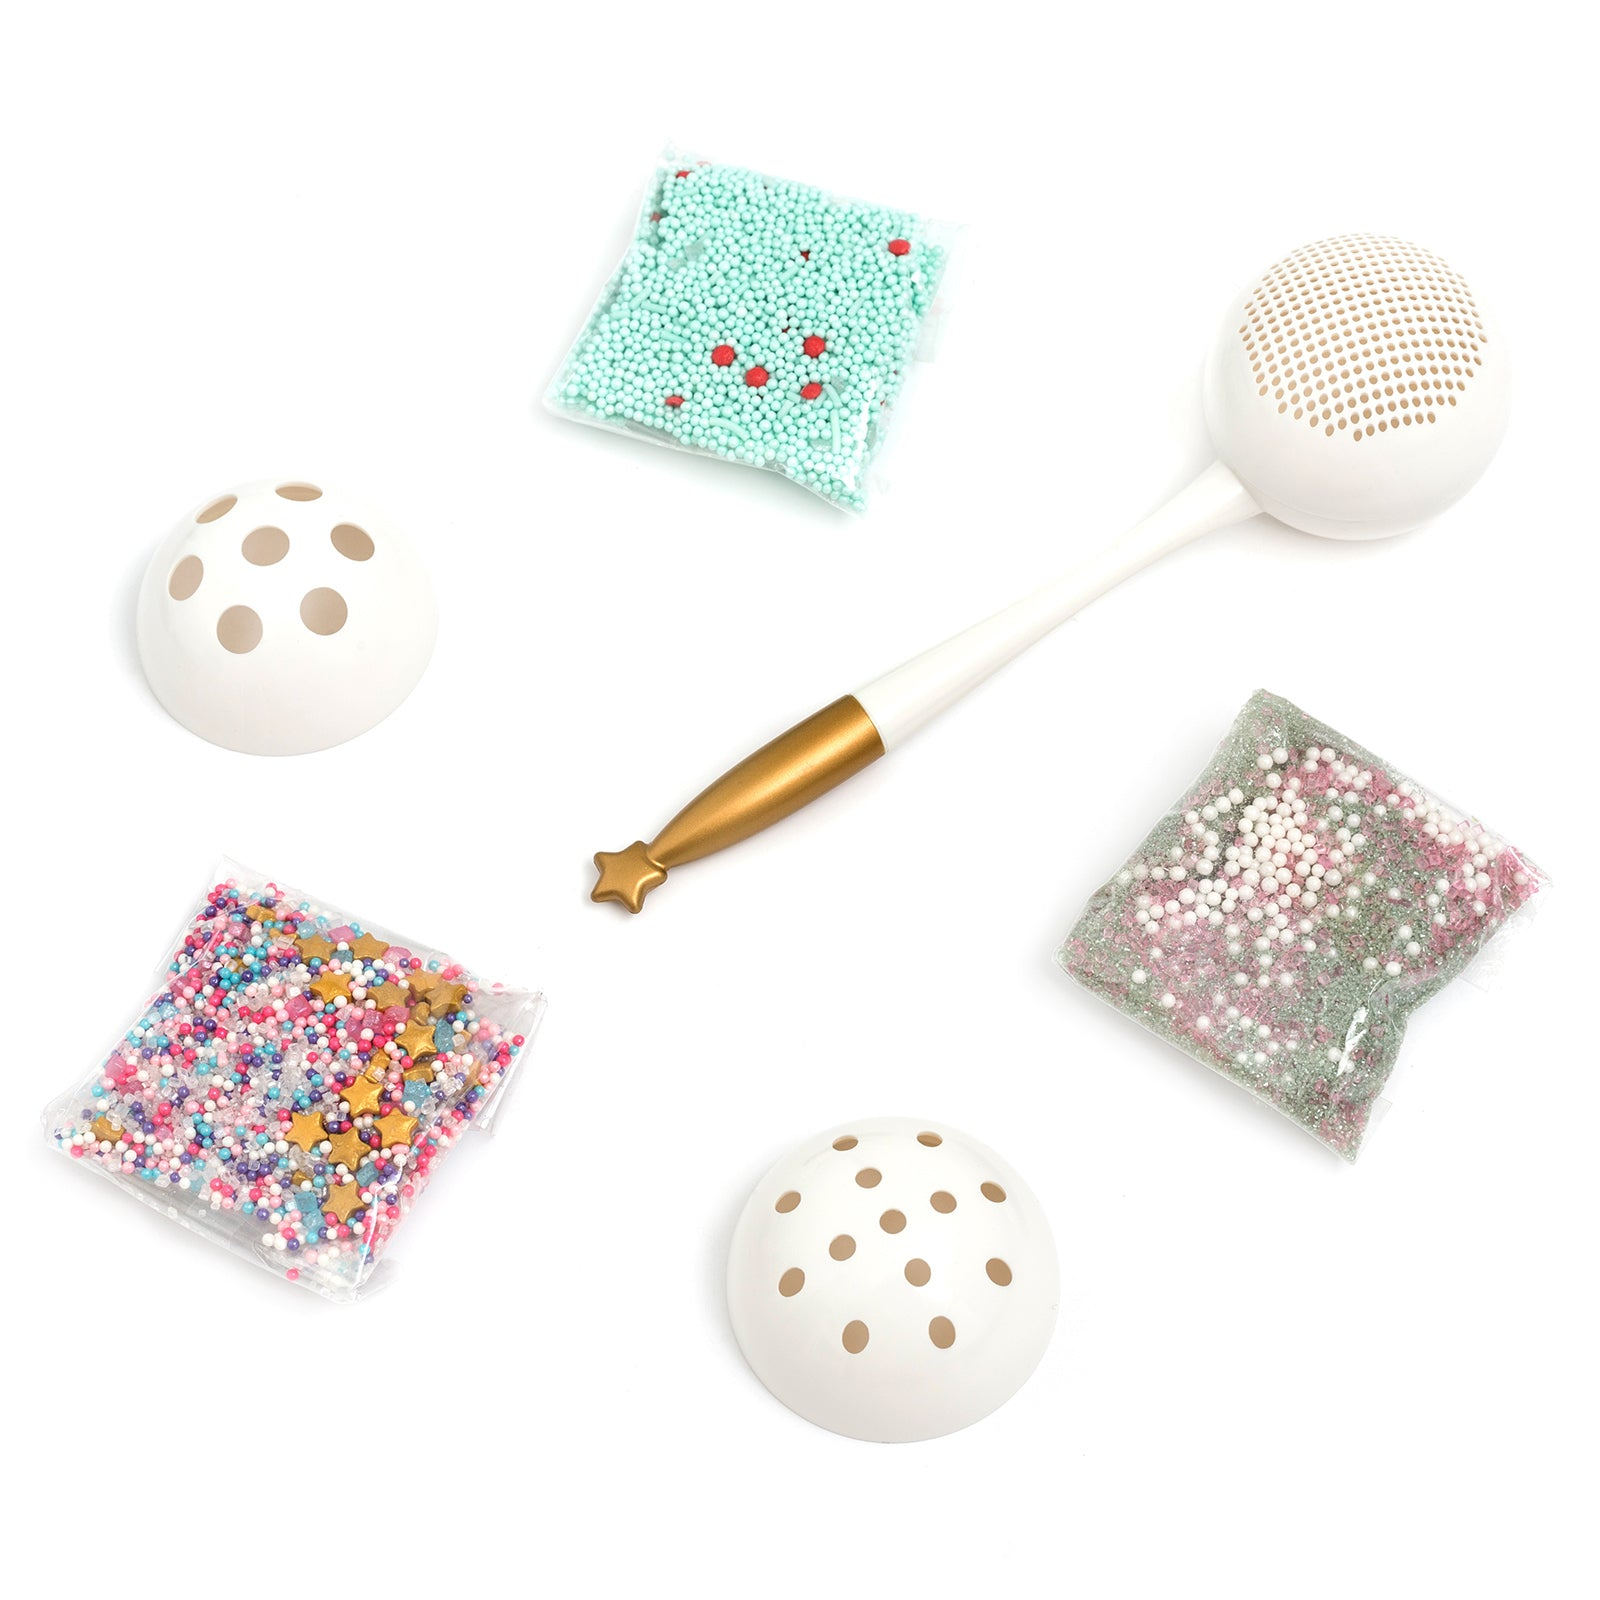 BF Food Crafting Kit / Kit Para Decorar Postres